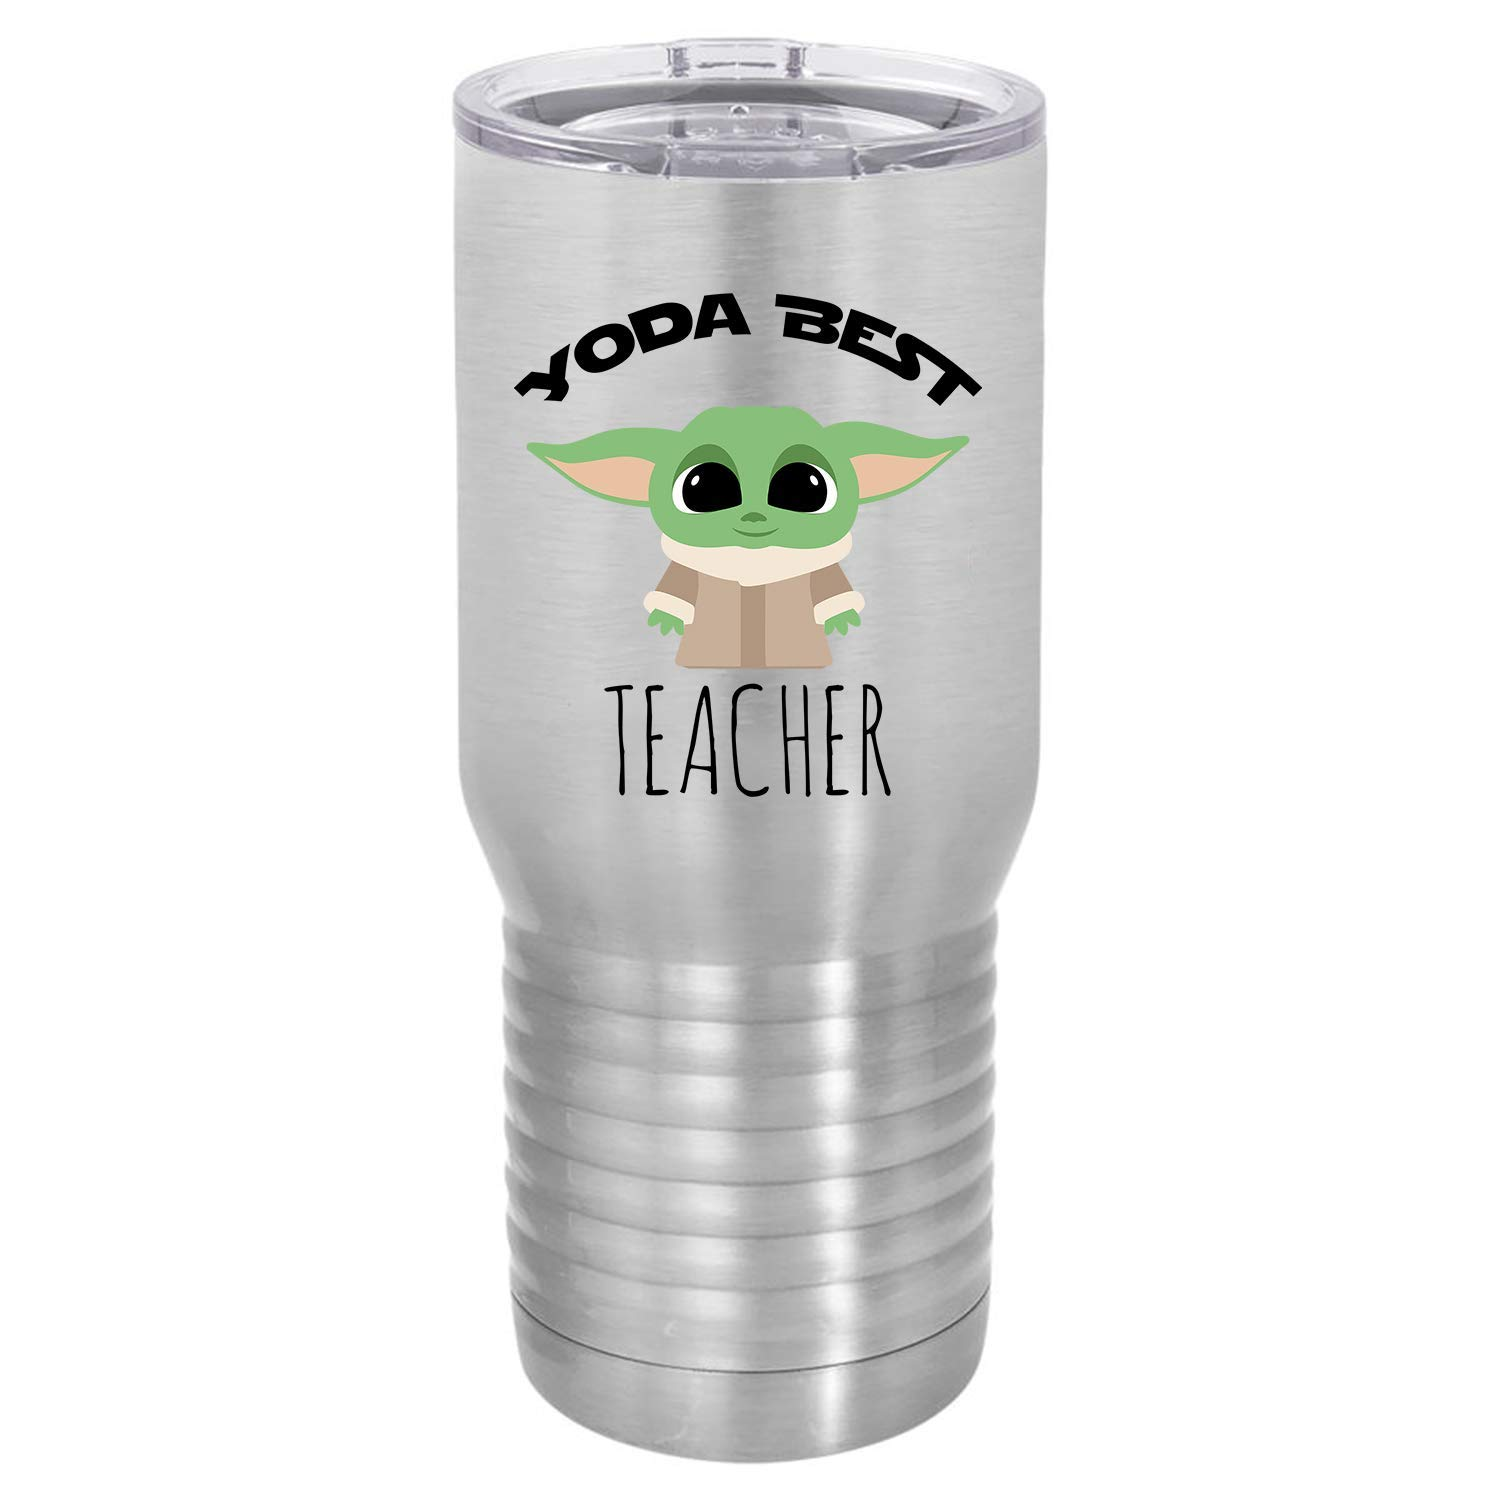 Yoda Best Product - Teacher Stainless Steel Mug 20 oz. Travel Don't miss the campaign Tumbler